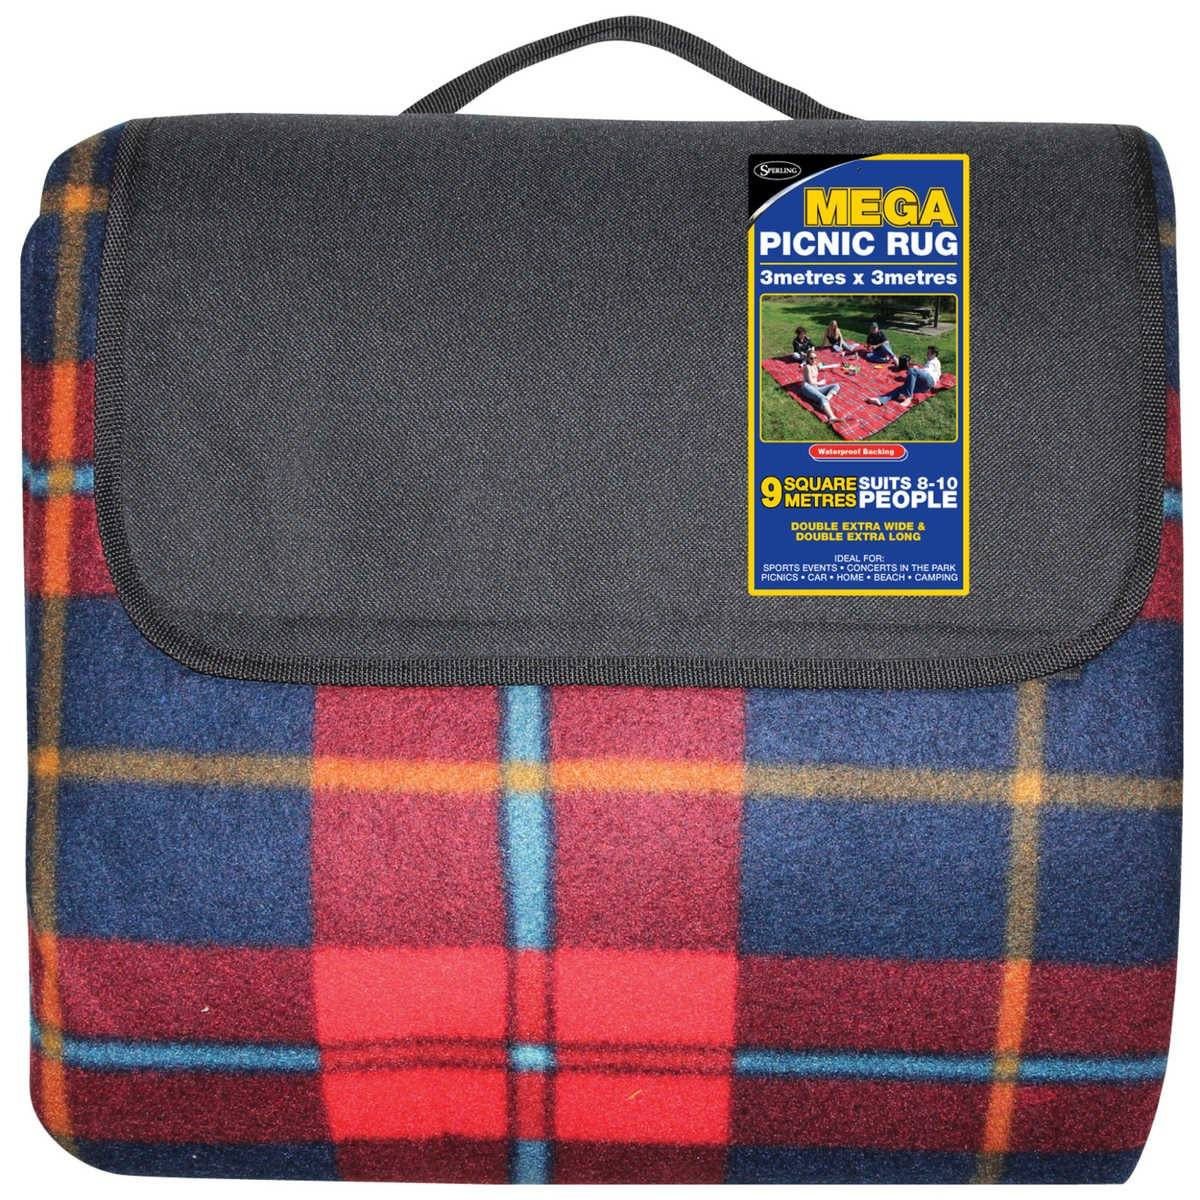 3m Products Australia Sperling Mega Picnic Rug 3m X 3m Big W